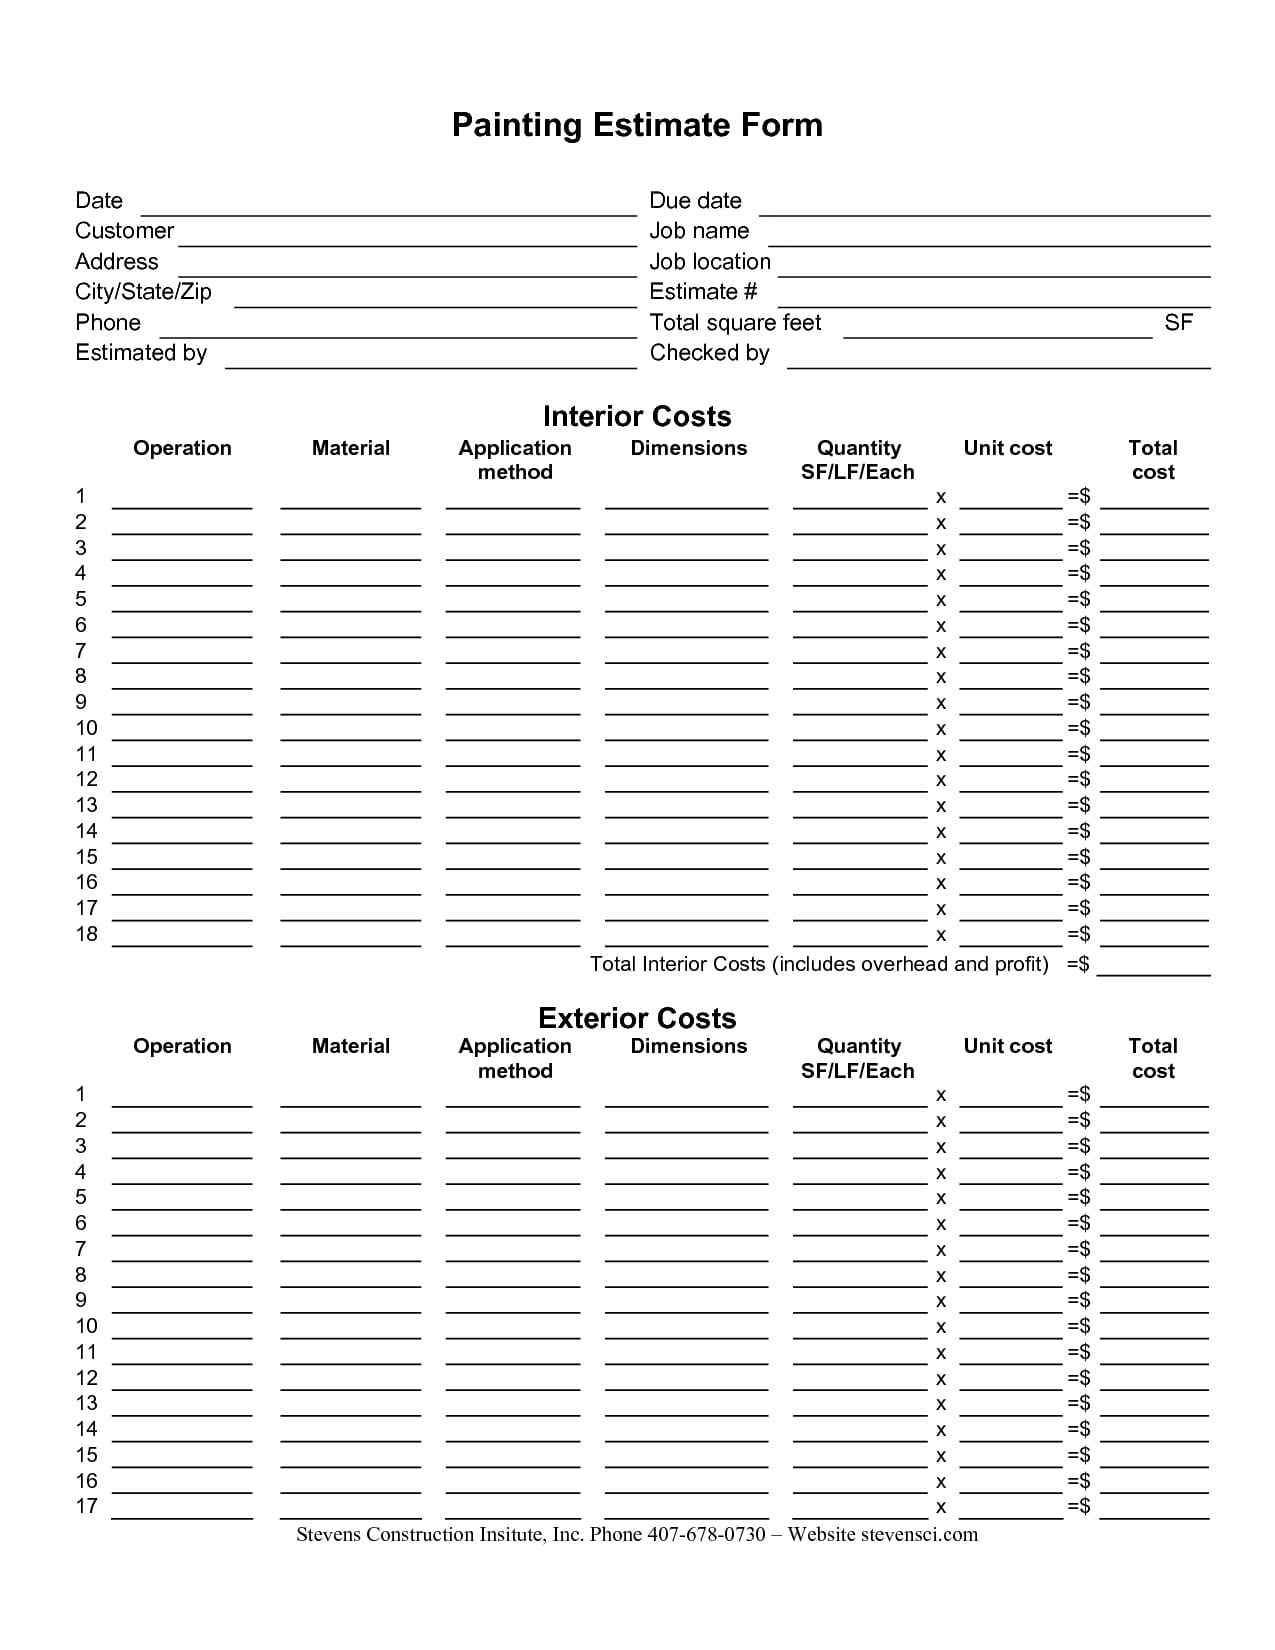 Free Building Estimate Format In Excel 1 Estimate Spreadsheet Template Spreadsheet Templates for Busines Spreadsheet Templates for Busines Construction Cost Estimating Template